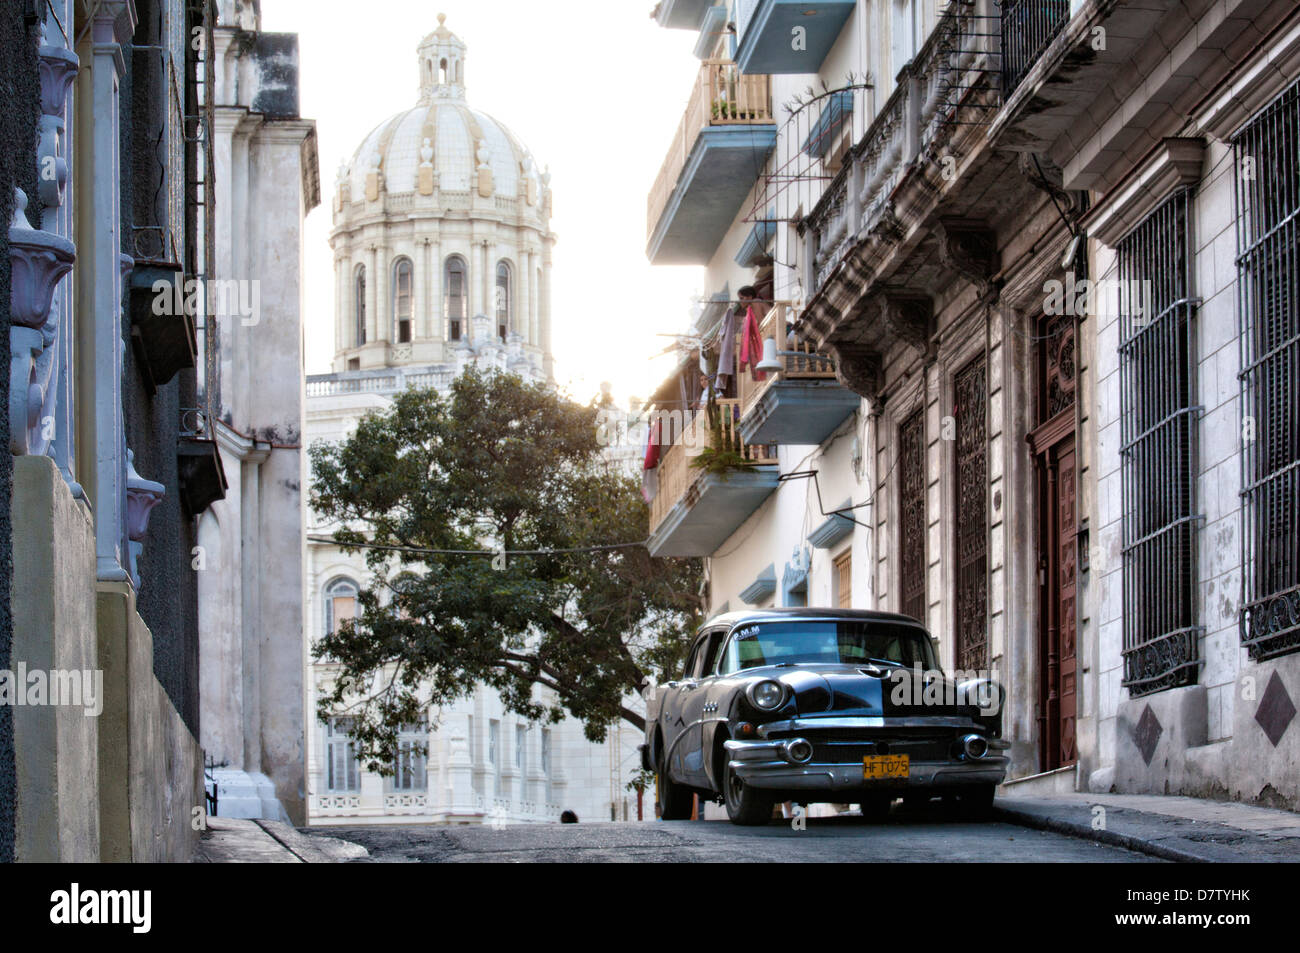 Black vintage American car parked on street, Havana Centro, Cuba, West Indies - Stock Image